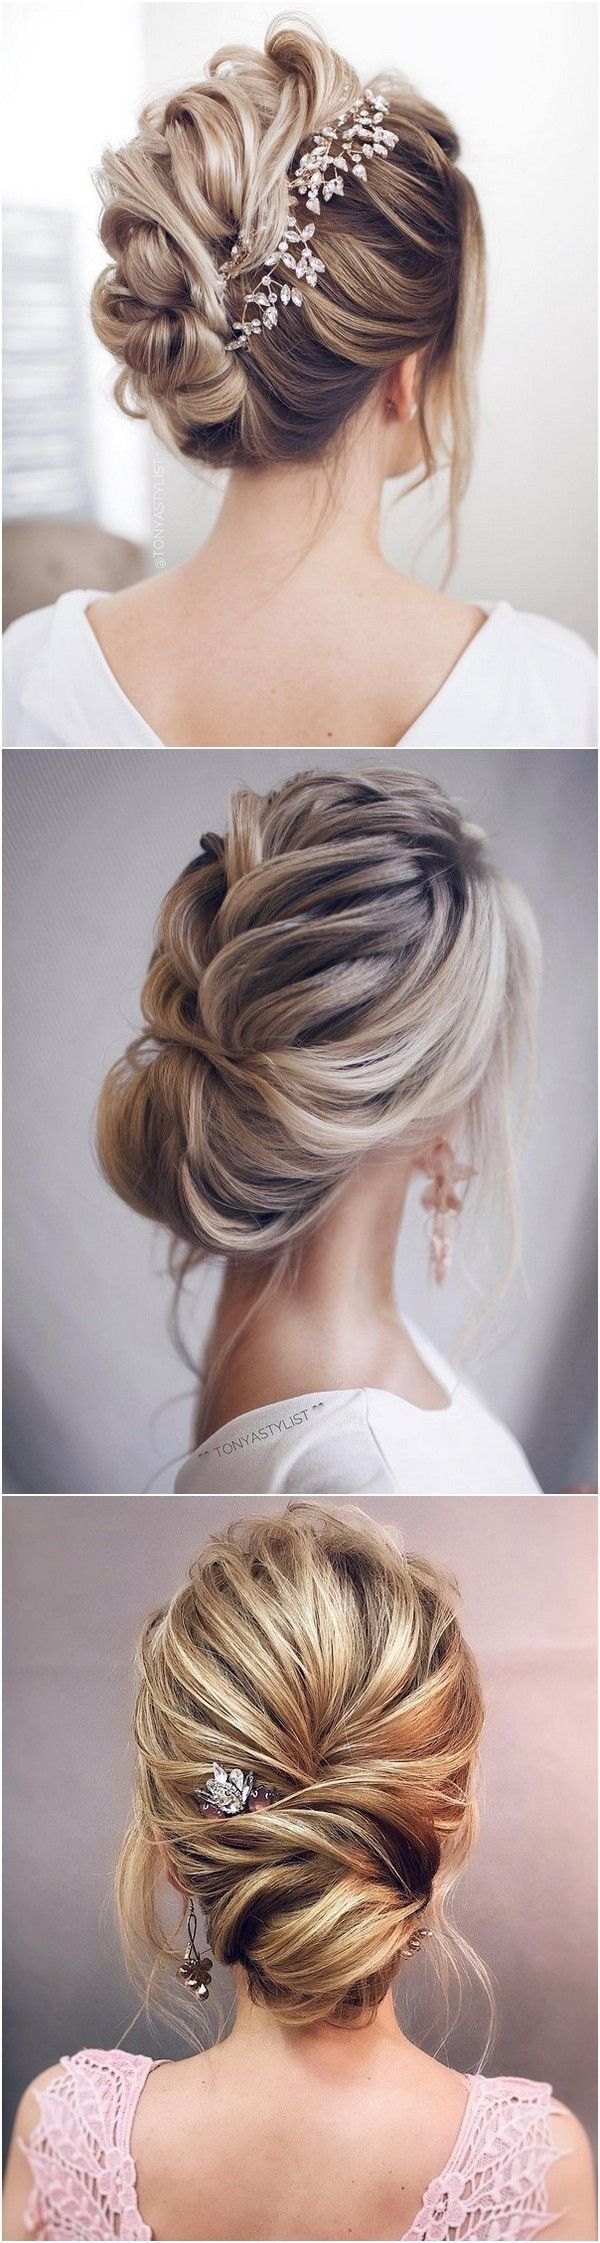 so pretty updo wedding hairstyles from tonyapushkareva dresses